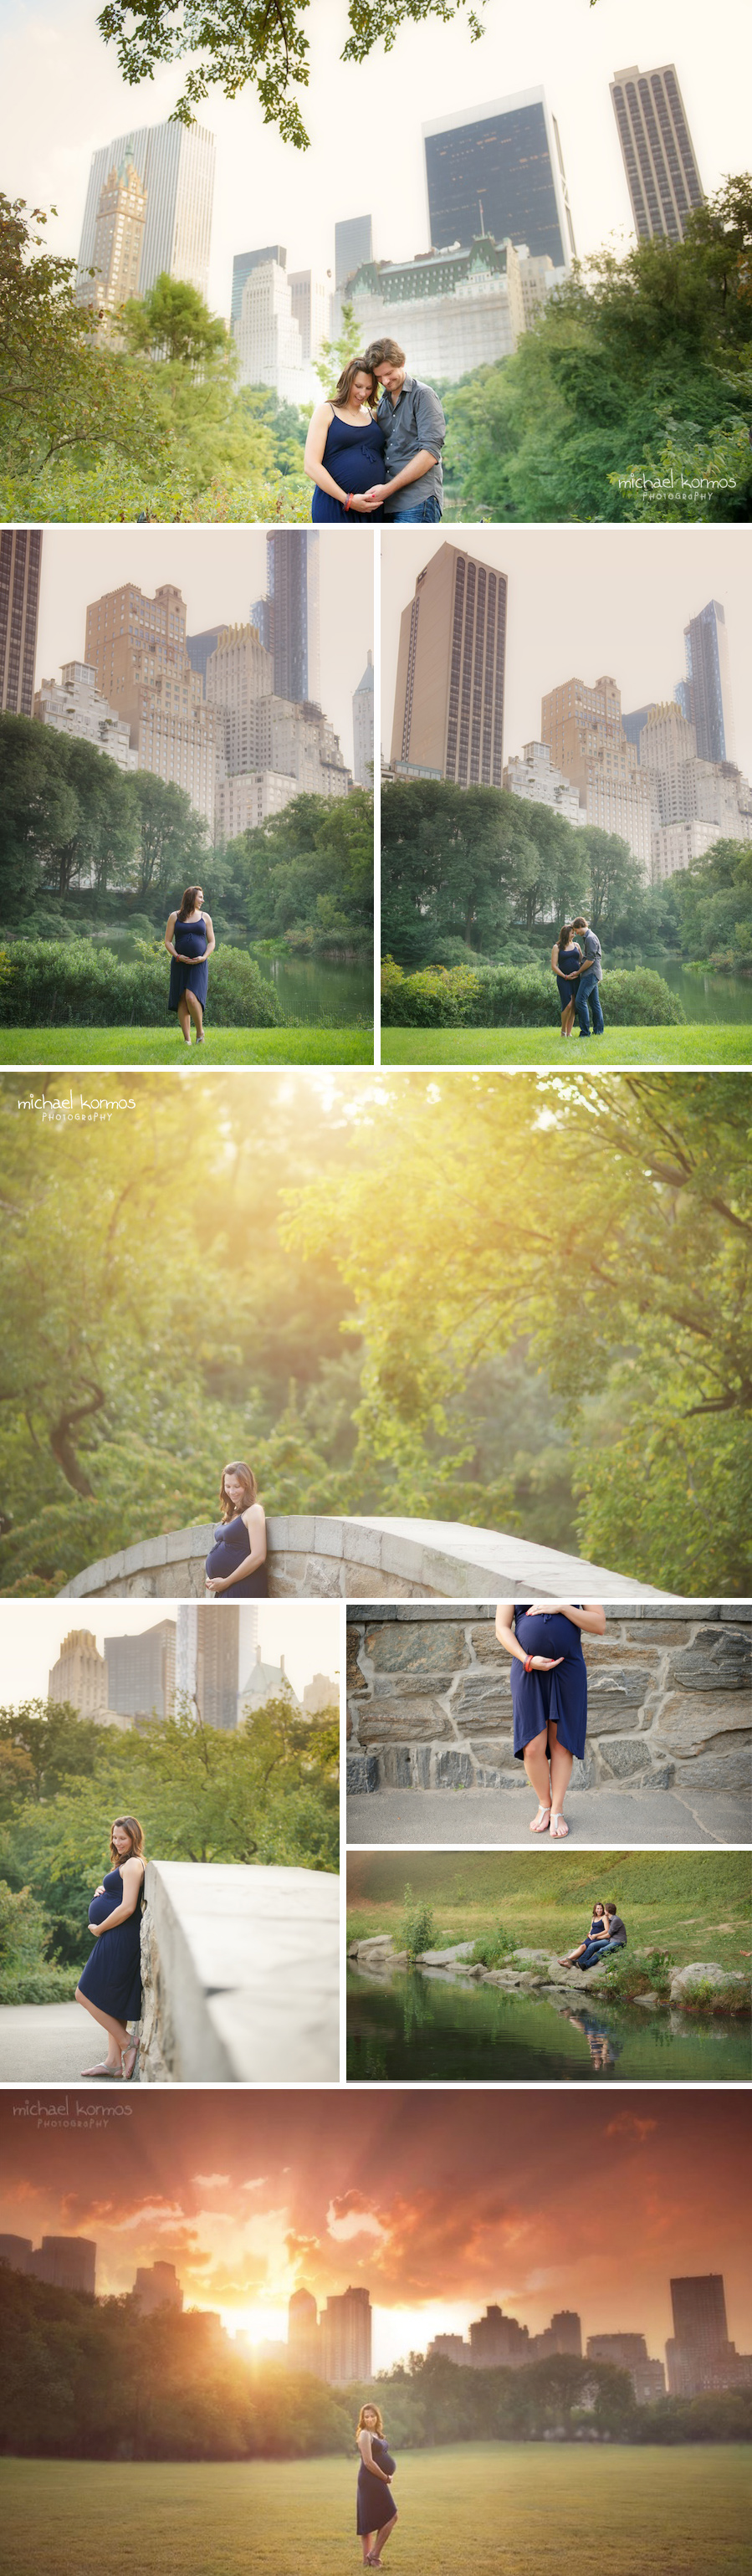 maternity couples portraits at Gapstow Bridge in Central Park